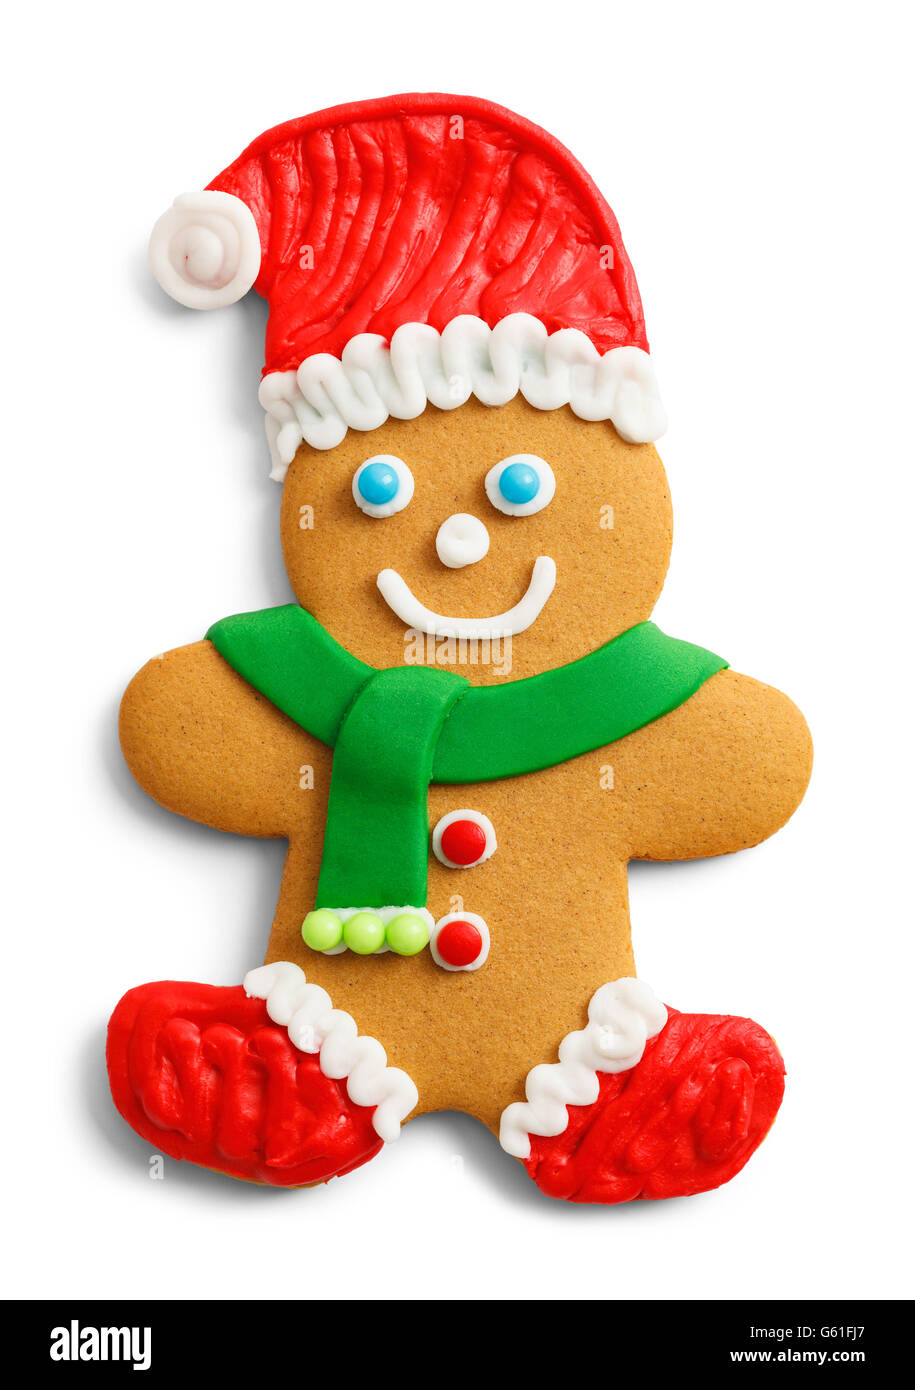 Christmas Gingerbread Cookie with Santa Hat and Scarf Isolated on White Background. - Stock Image